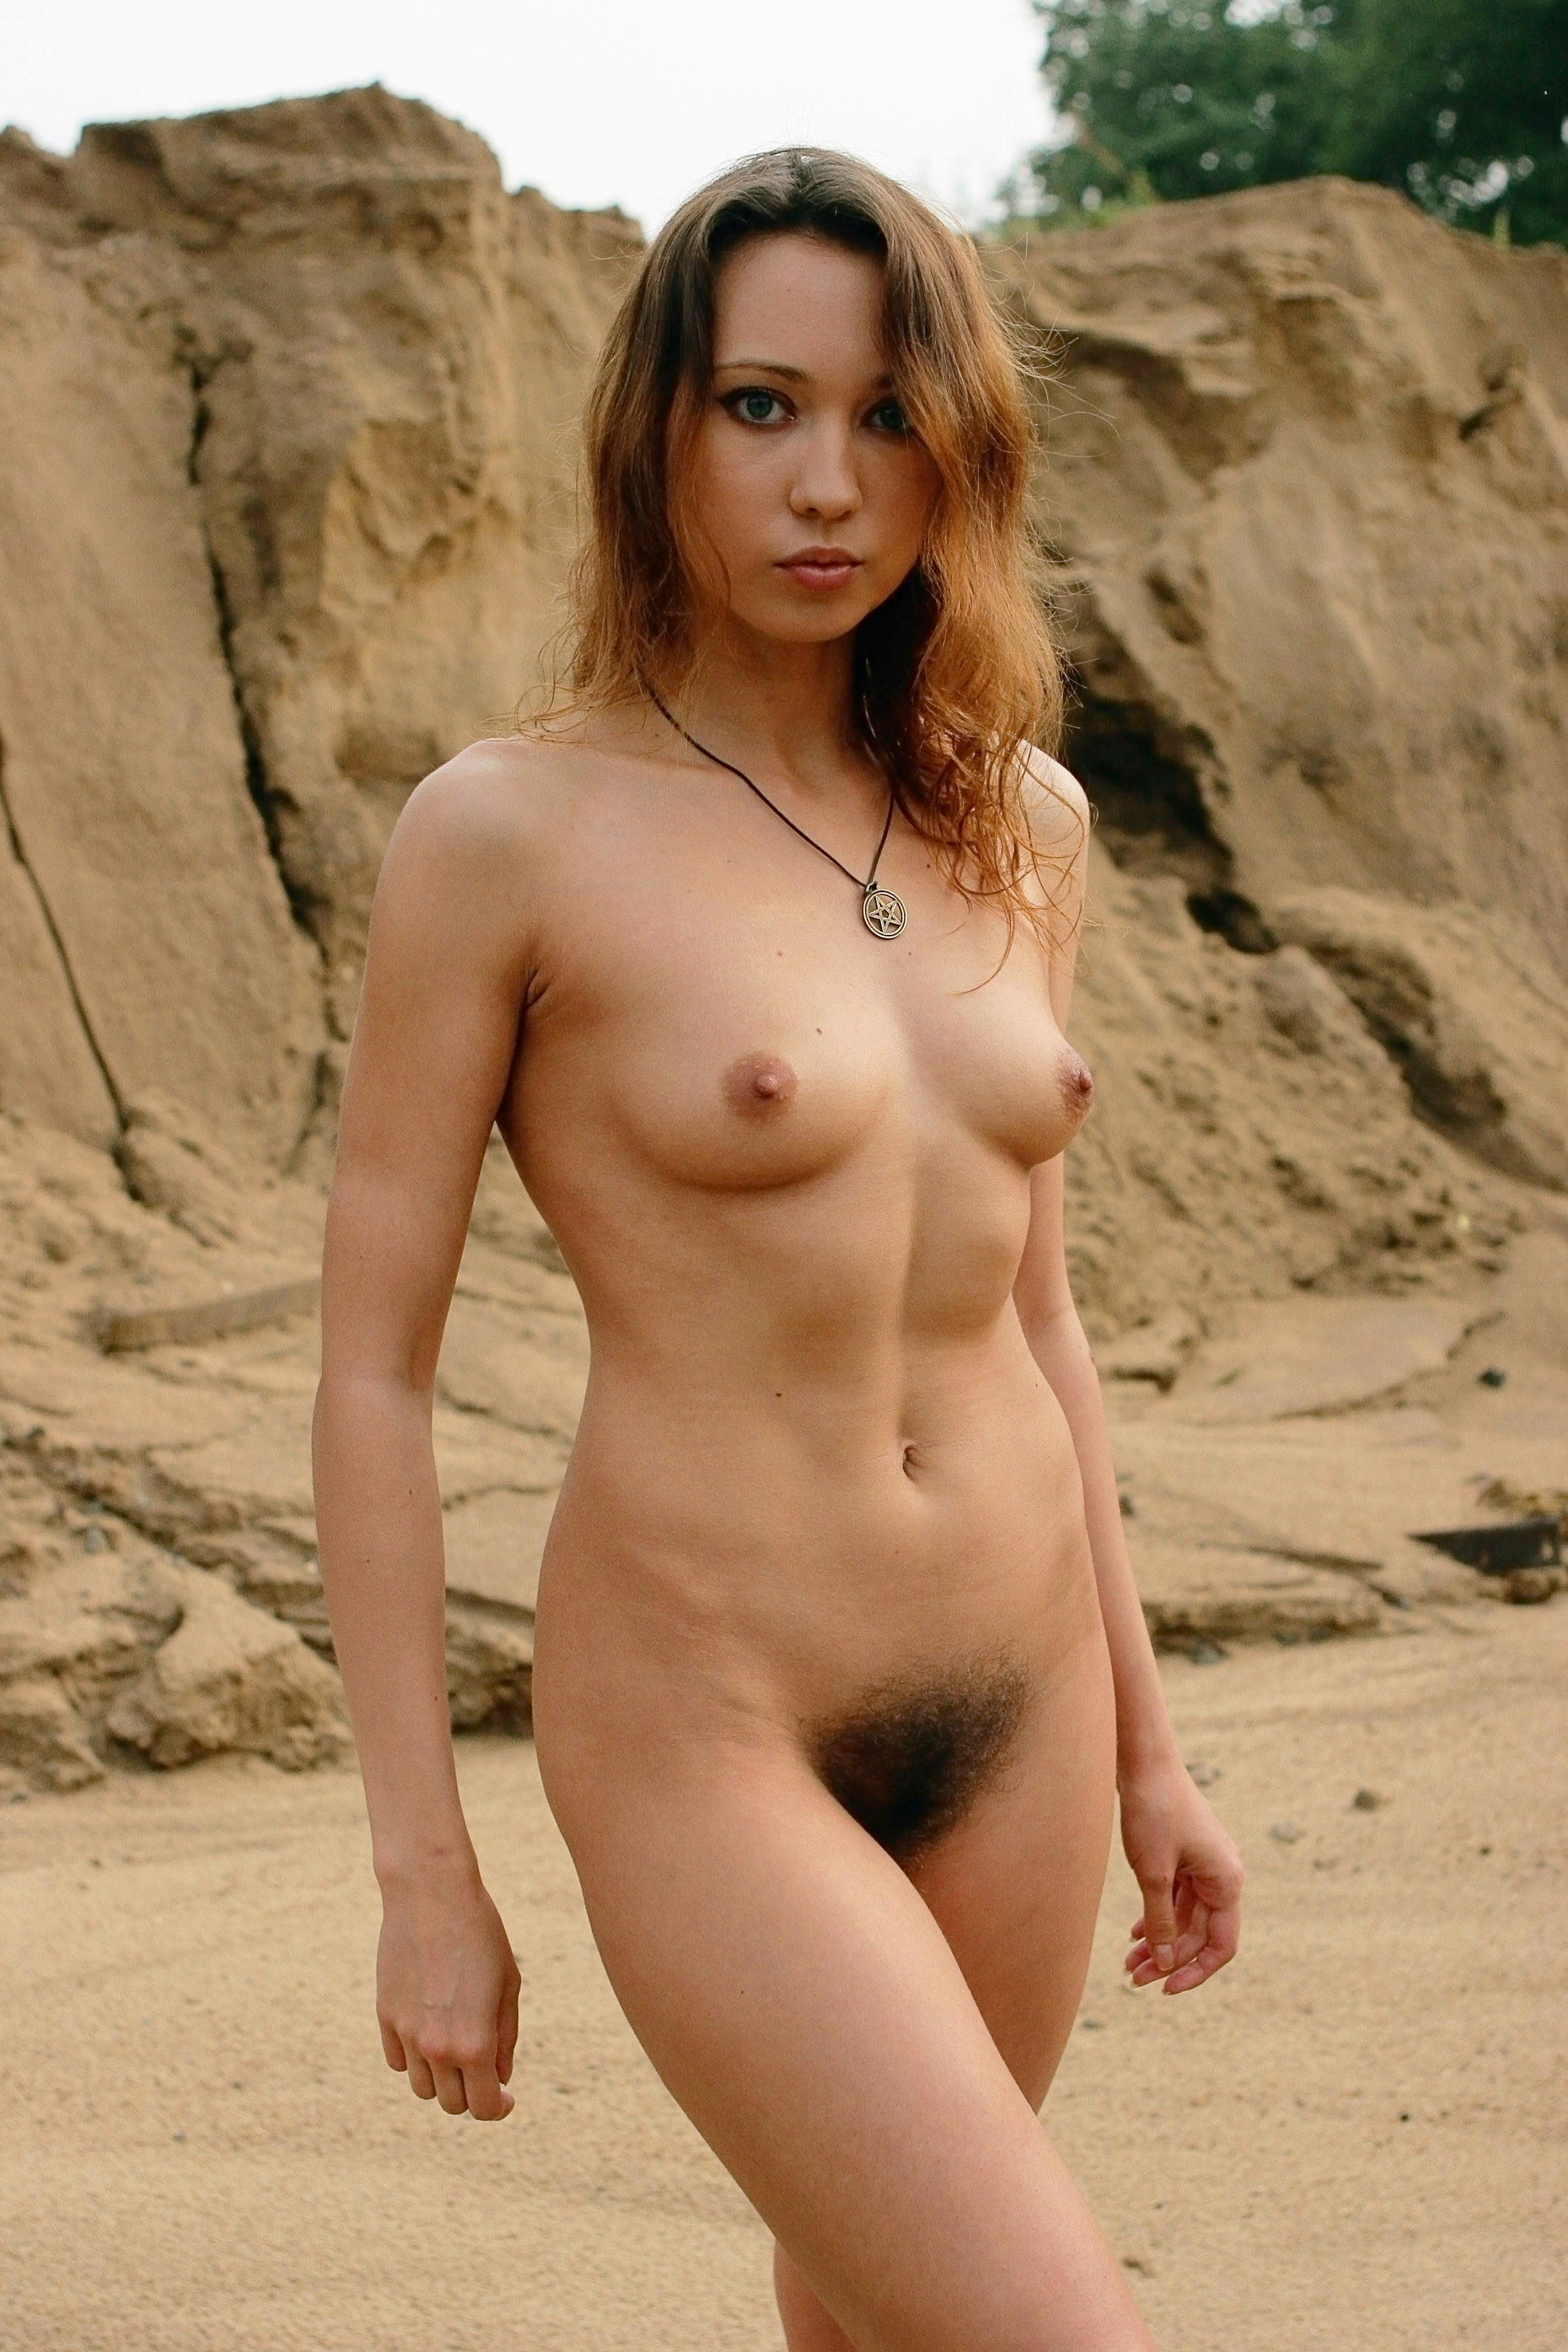 hairy nude young women